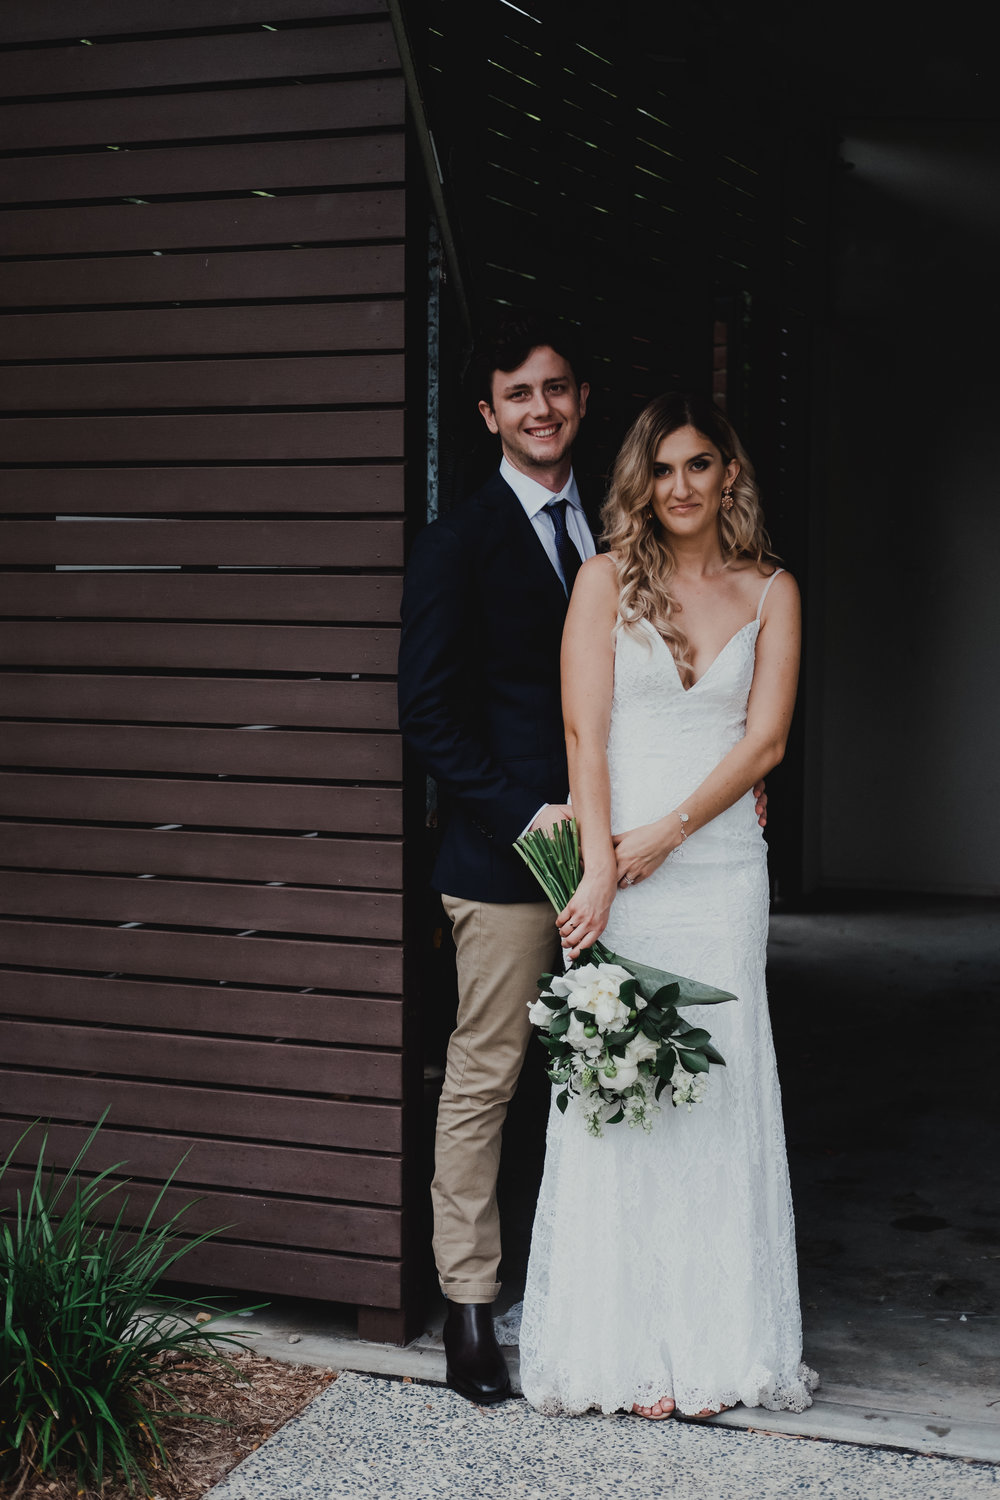 Em&Micth-highlights-TaraLillyPhotography17.jpg